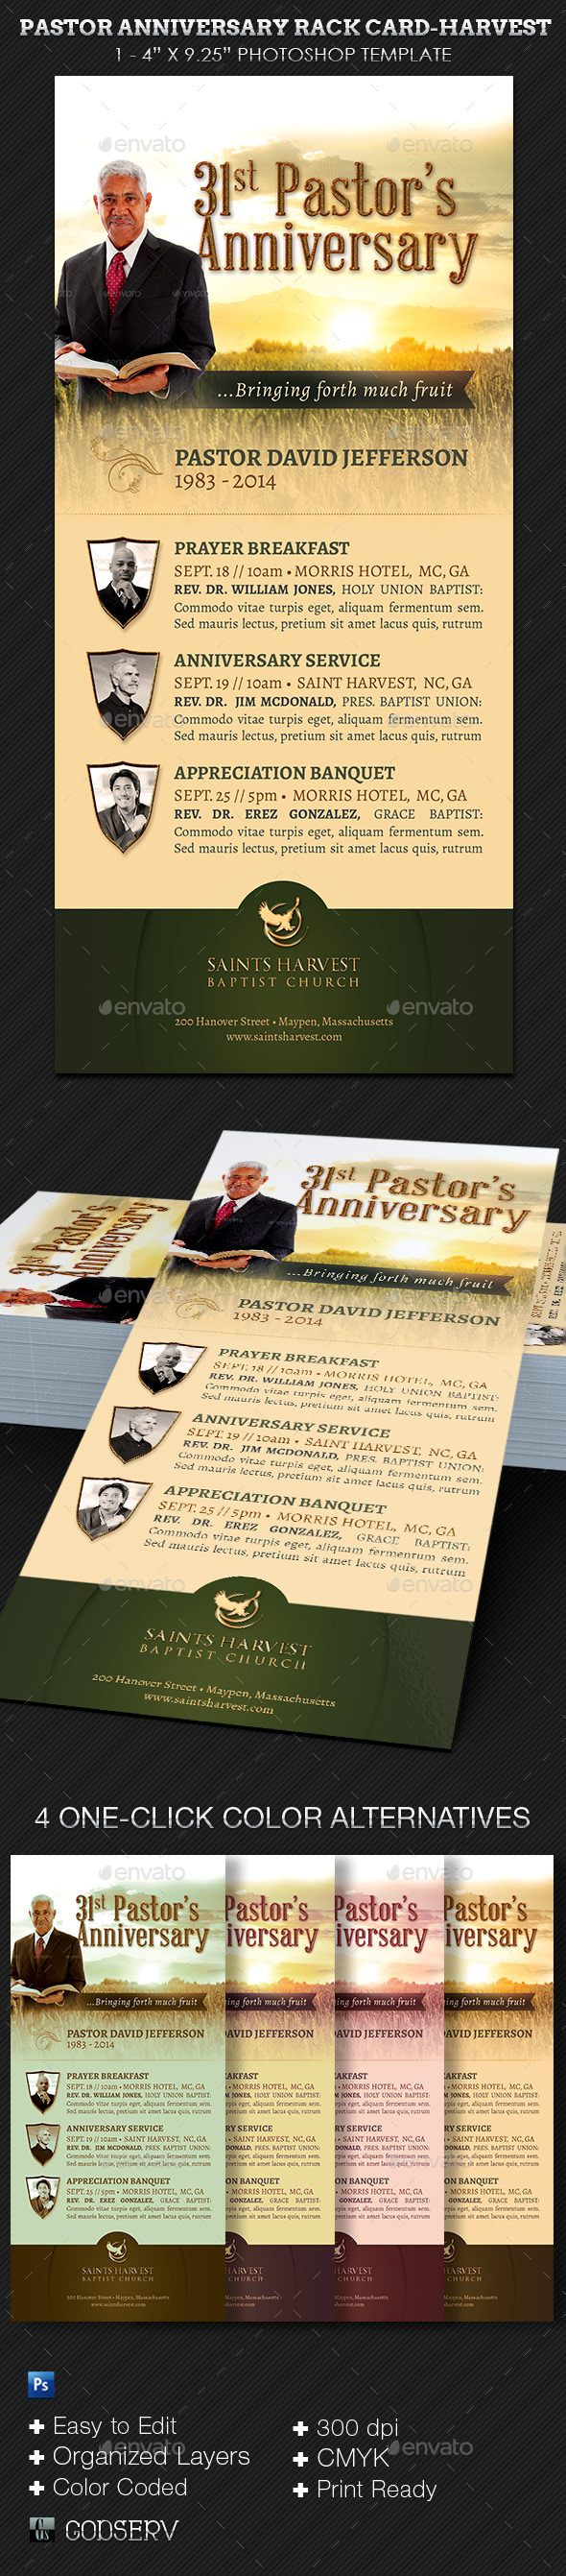 GraphicRiver Pastor Anniversary Rack Card Template-Harvest 8846350